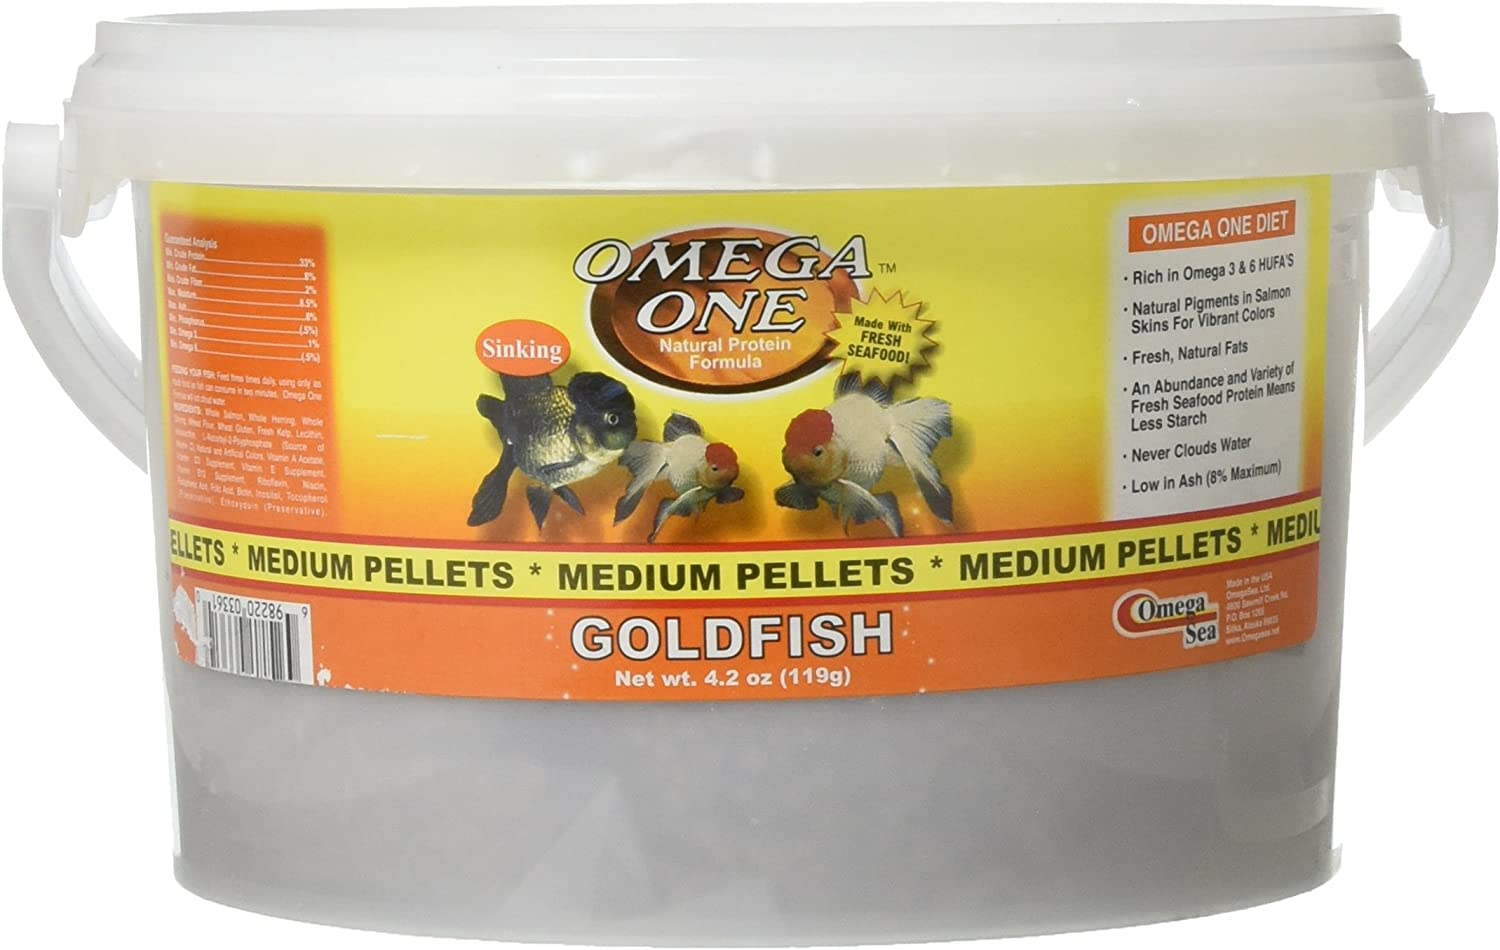 Omega One Goldfish Pellets, Sinking, 4mm Medium Pellets